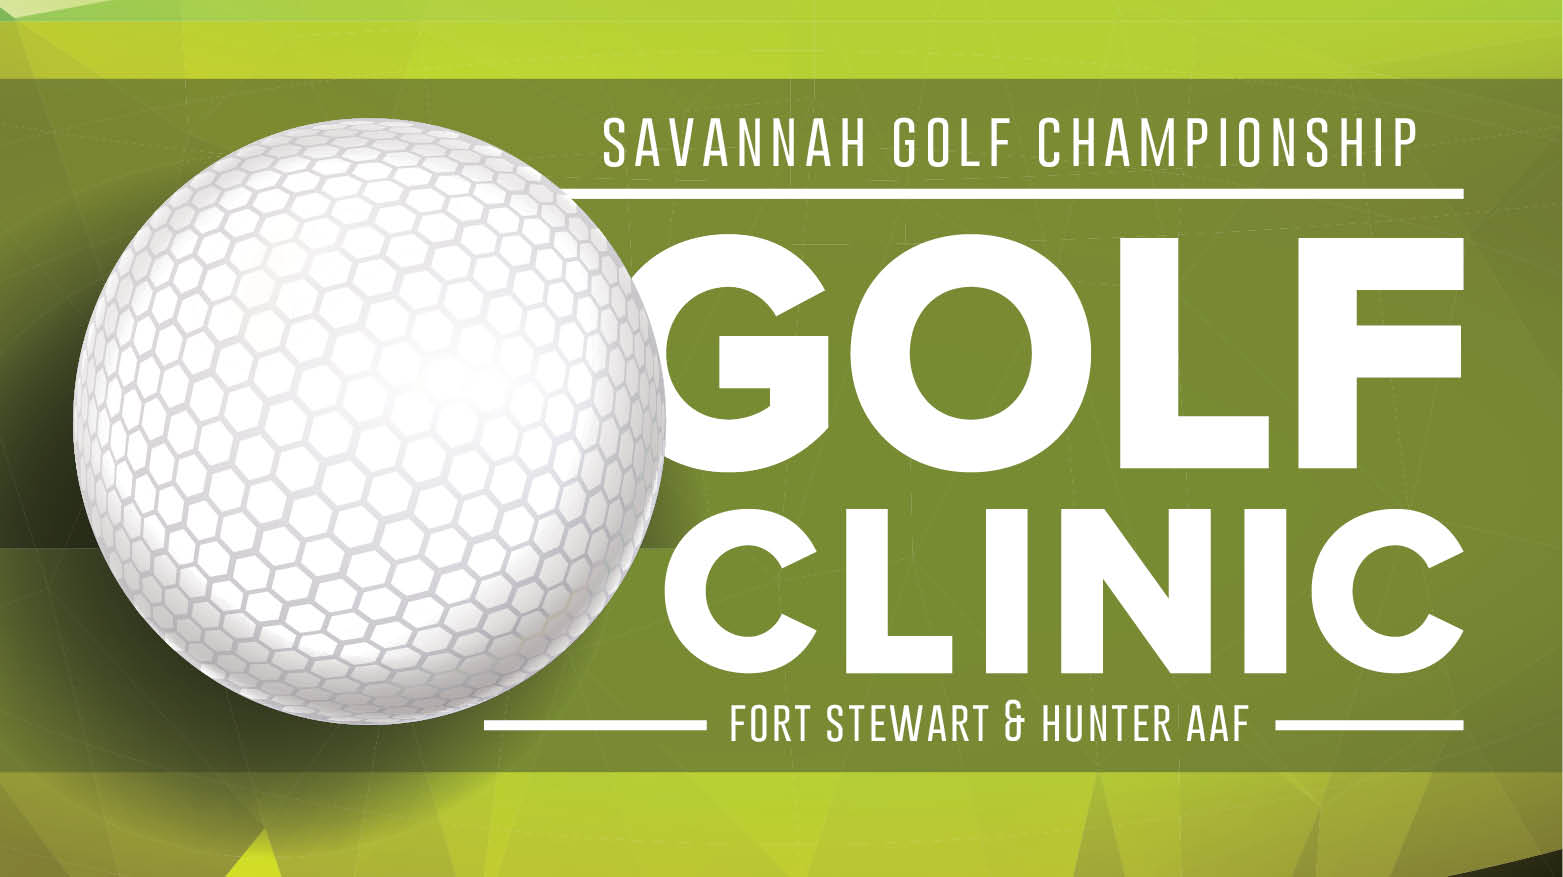 Savannah Golf Championship - Golf Clinic